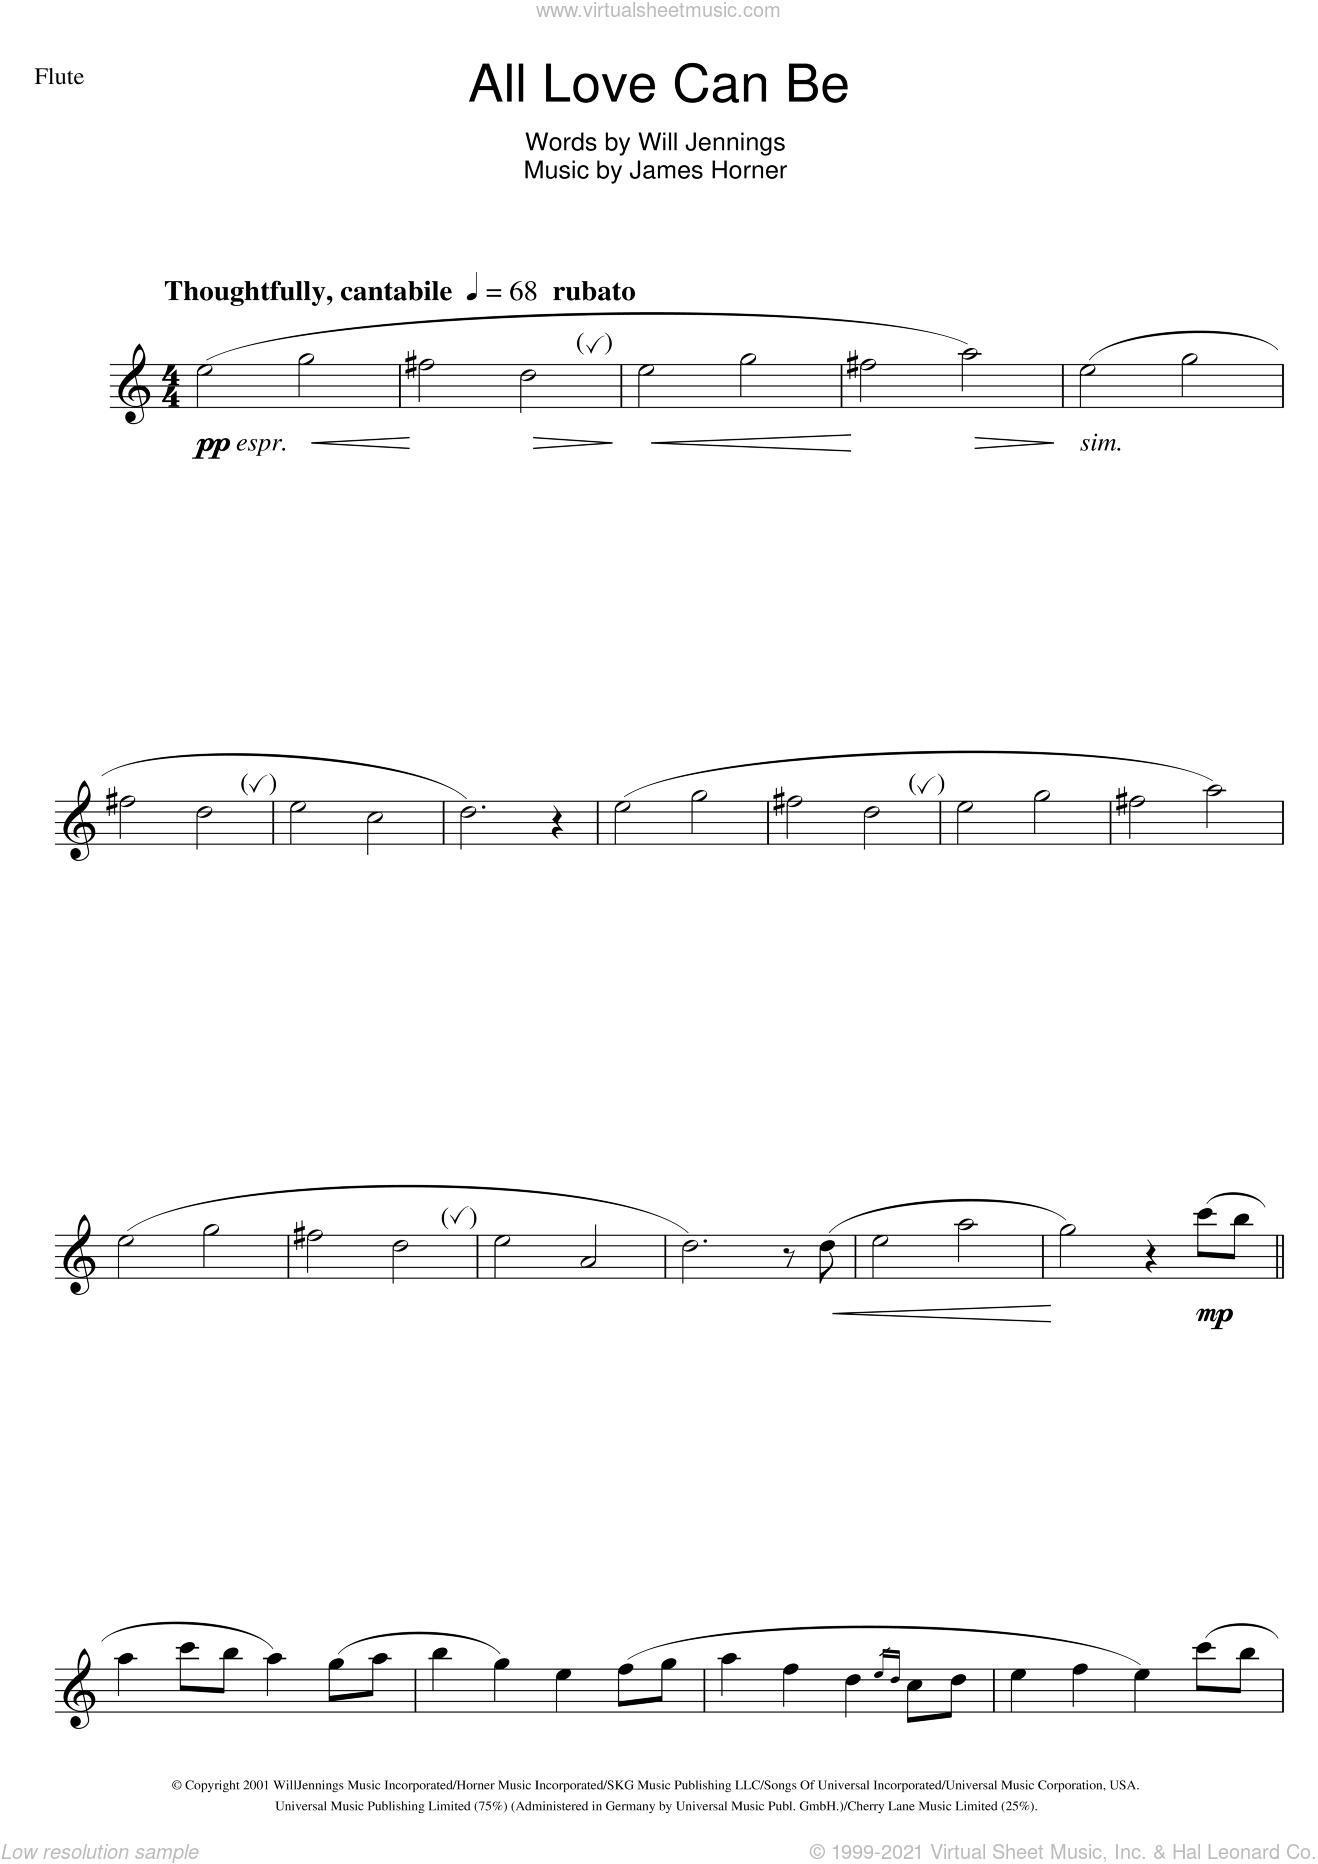 Horner - All Love Can Be (from A Beautiful Mind) sheet music for flute solo